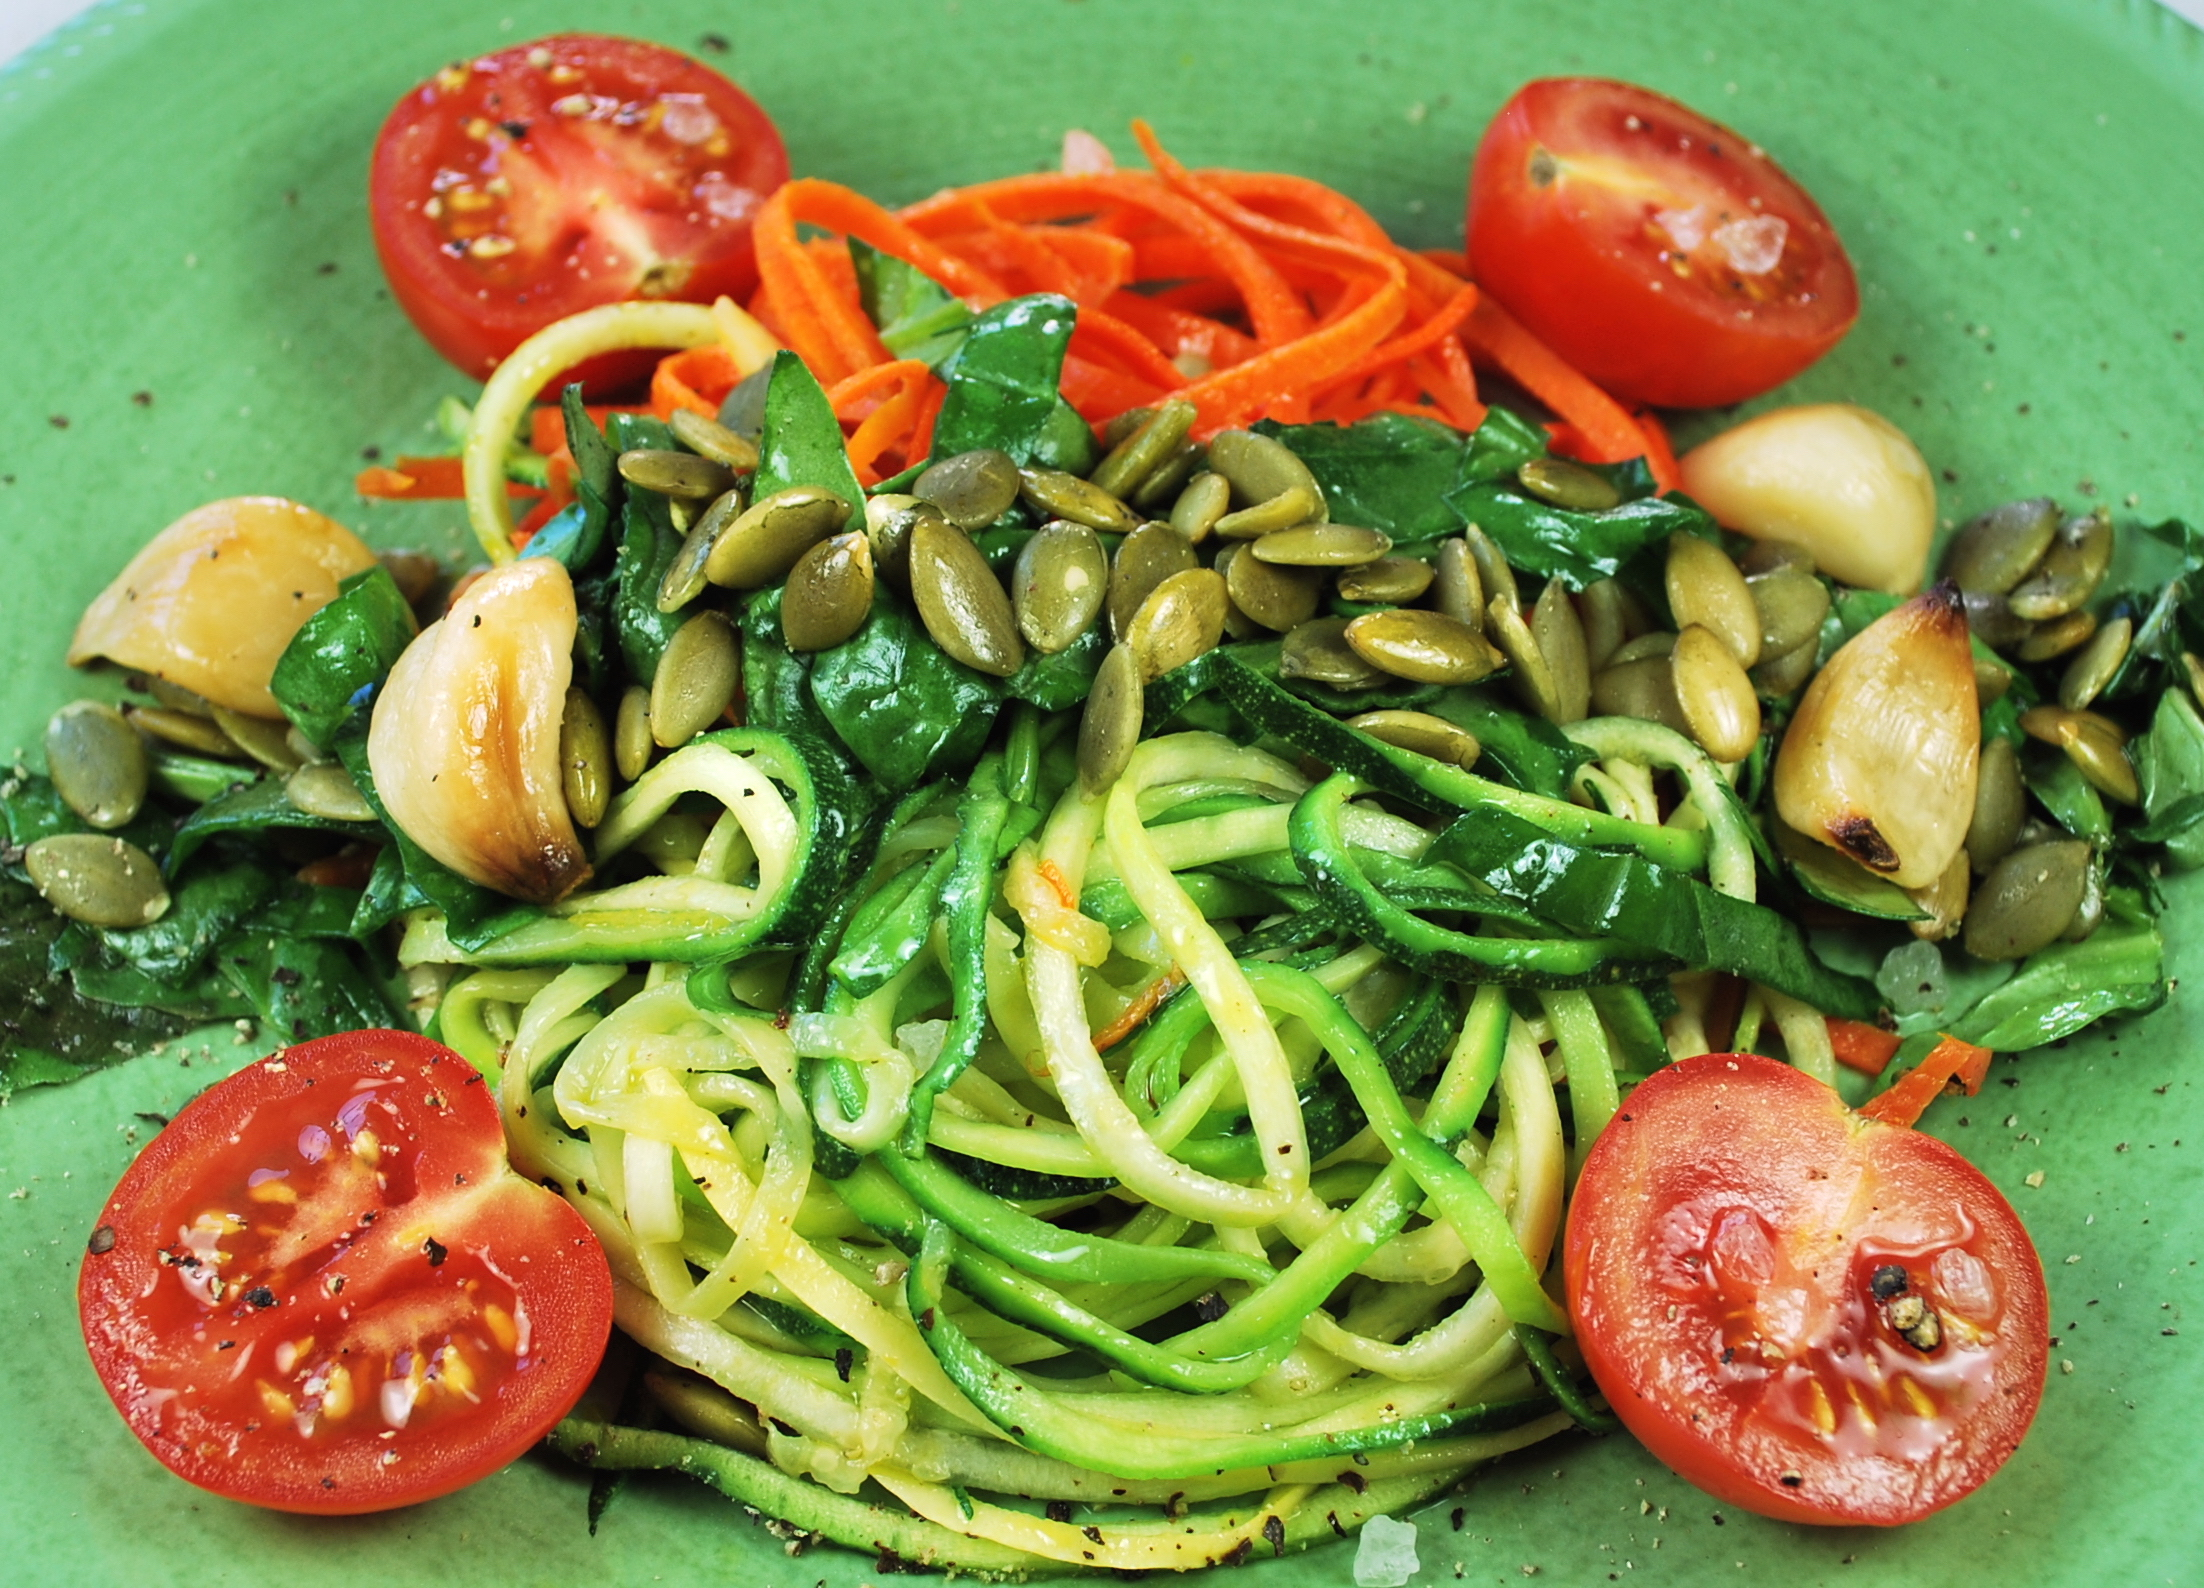 spiralizing recipes - carrot and zucchini spaghetti olive oil